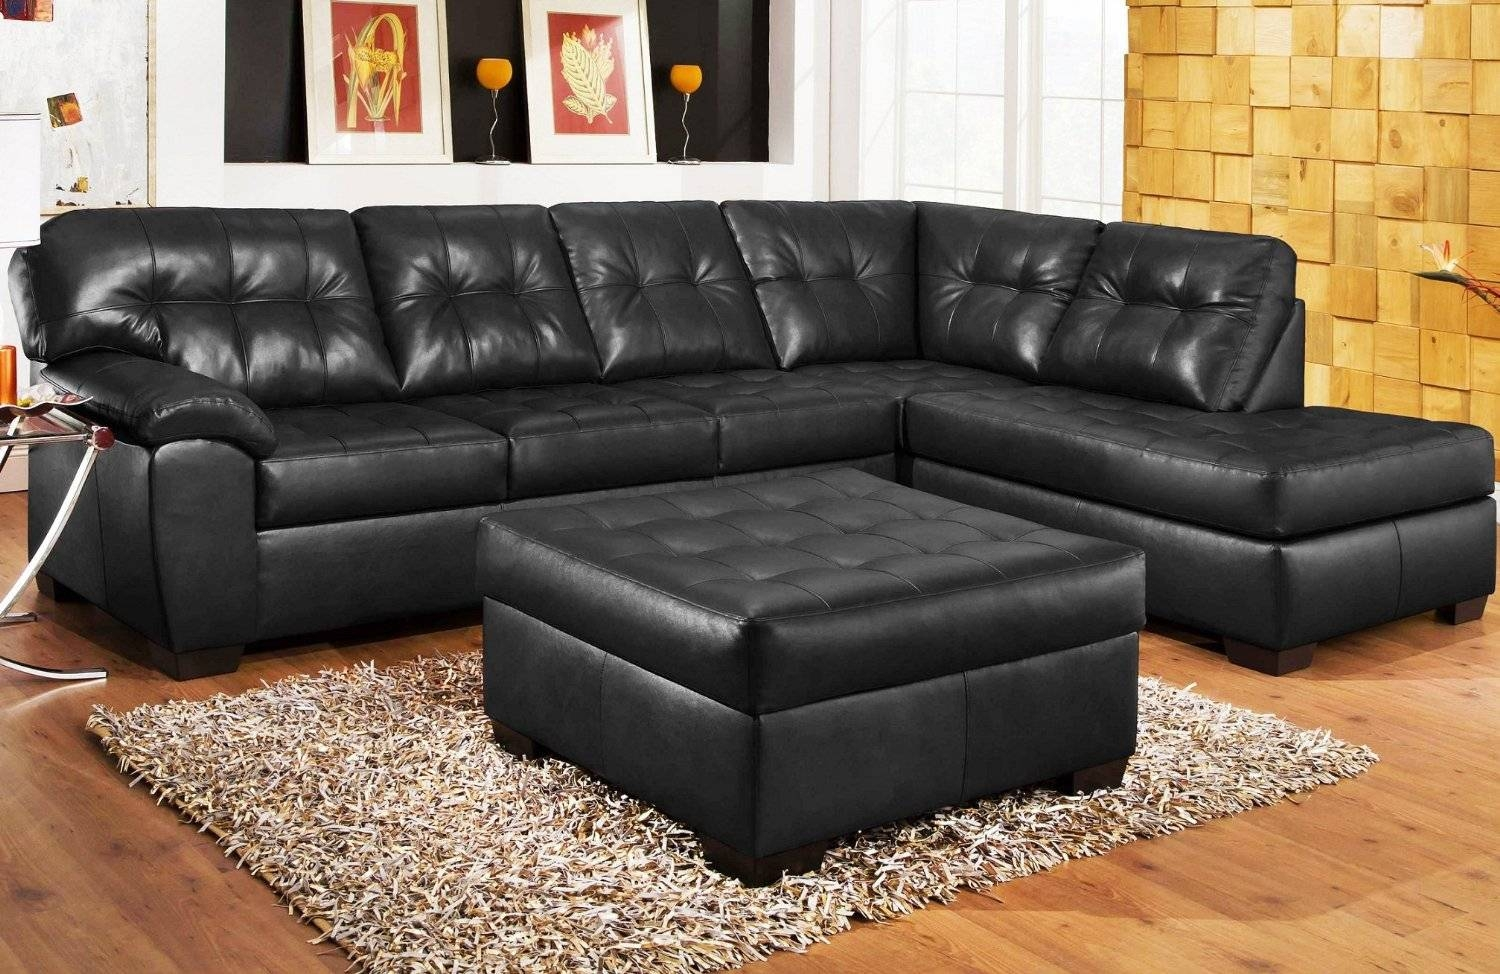 Black Leather Sectional Sofa | Roselawnlutheran throughout Cheap Black Sofas (Image 2 of 30)